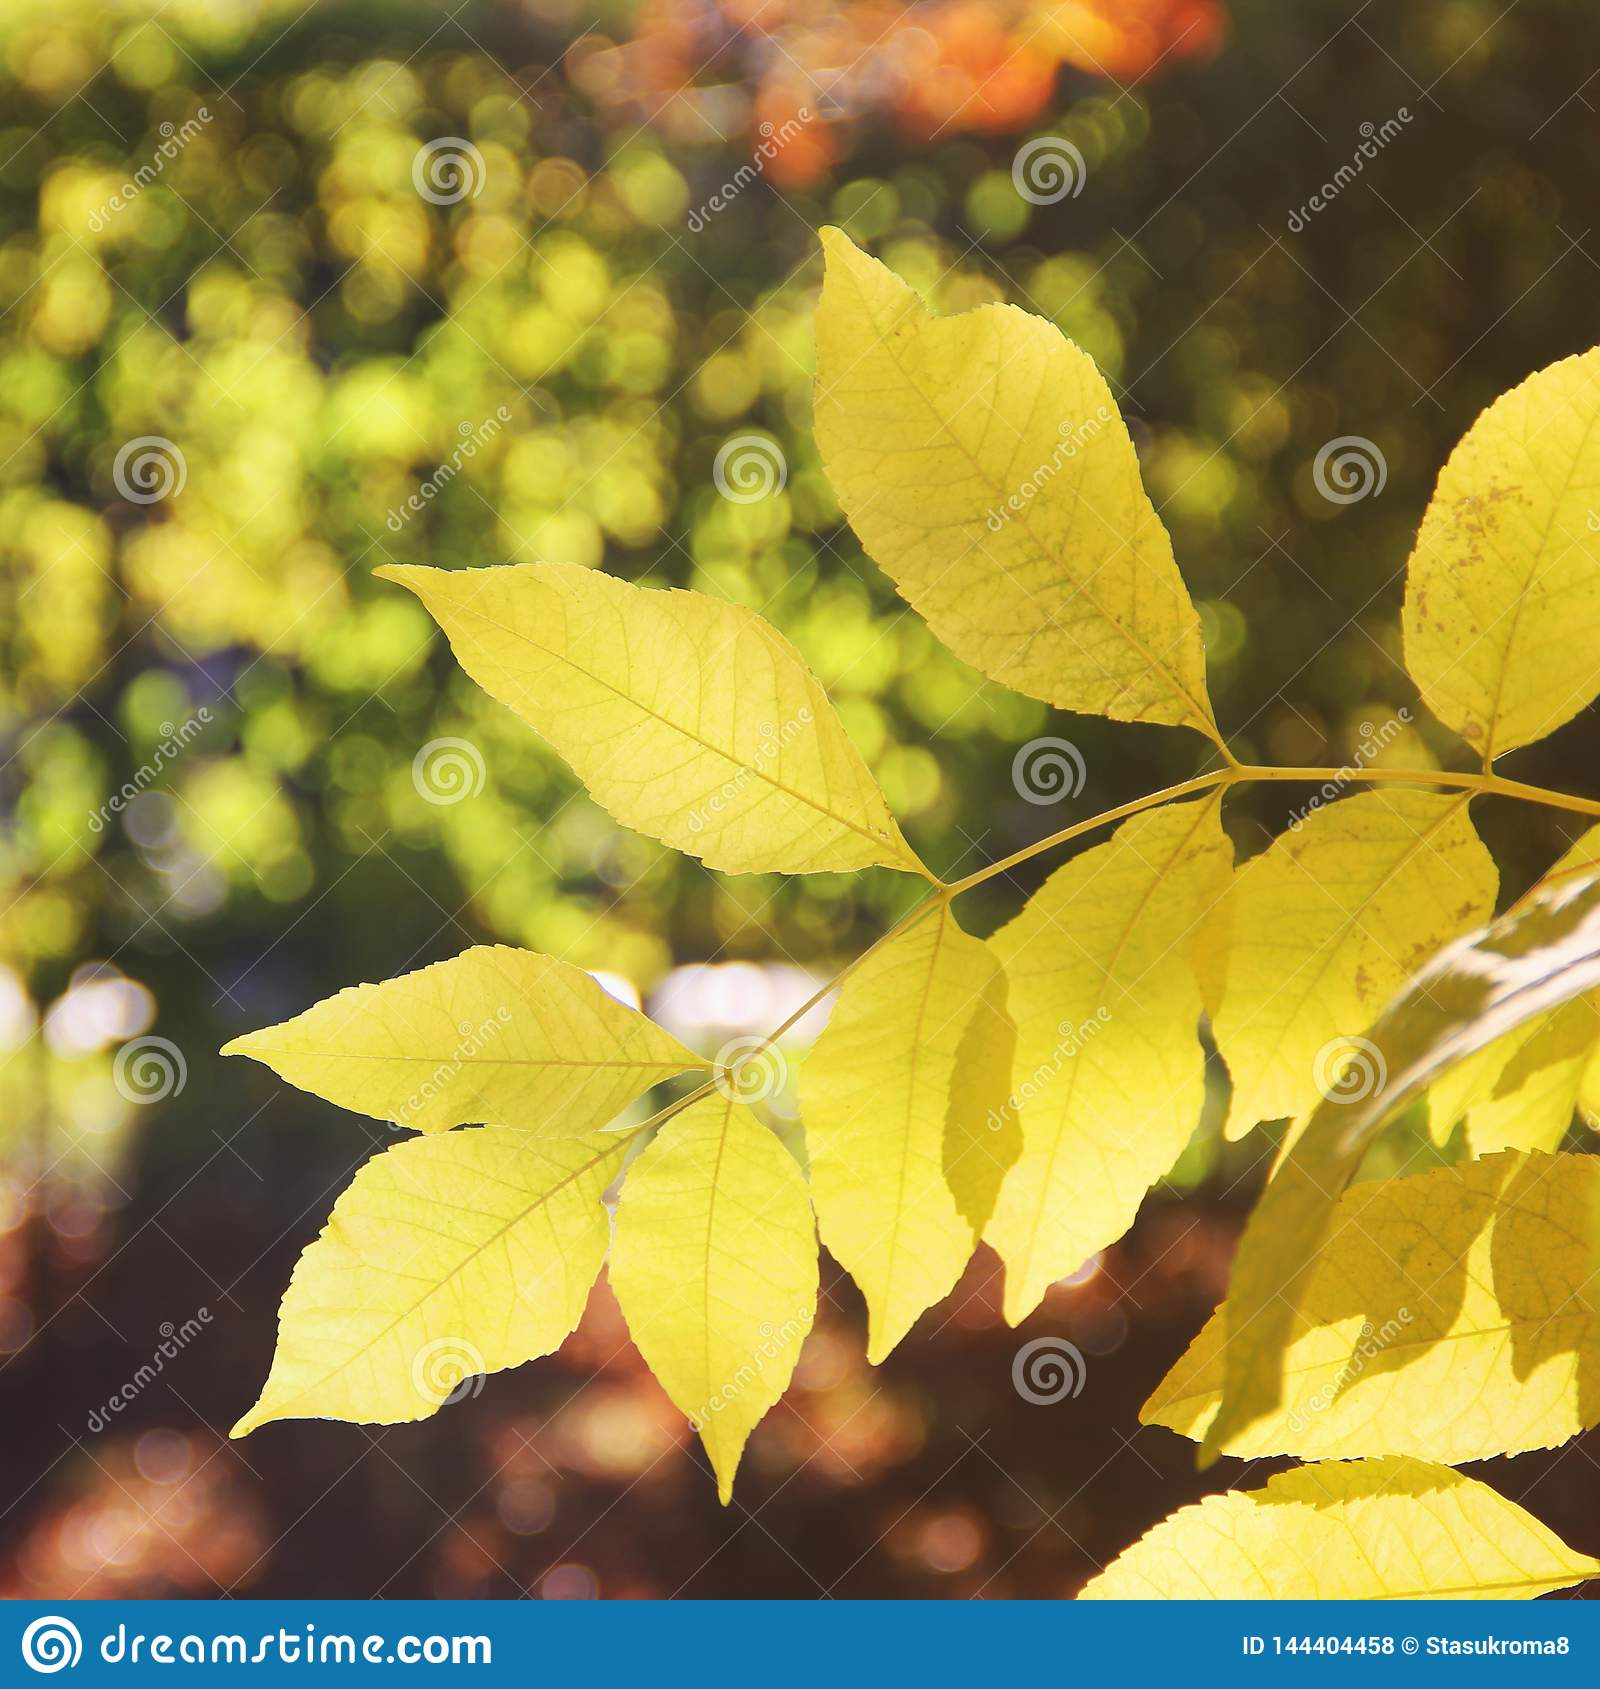 Yellow leaves on a tree. Beautiful autumn